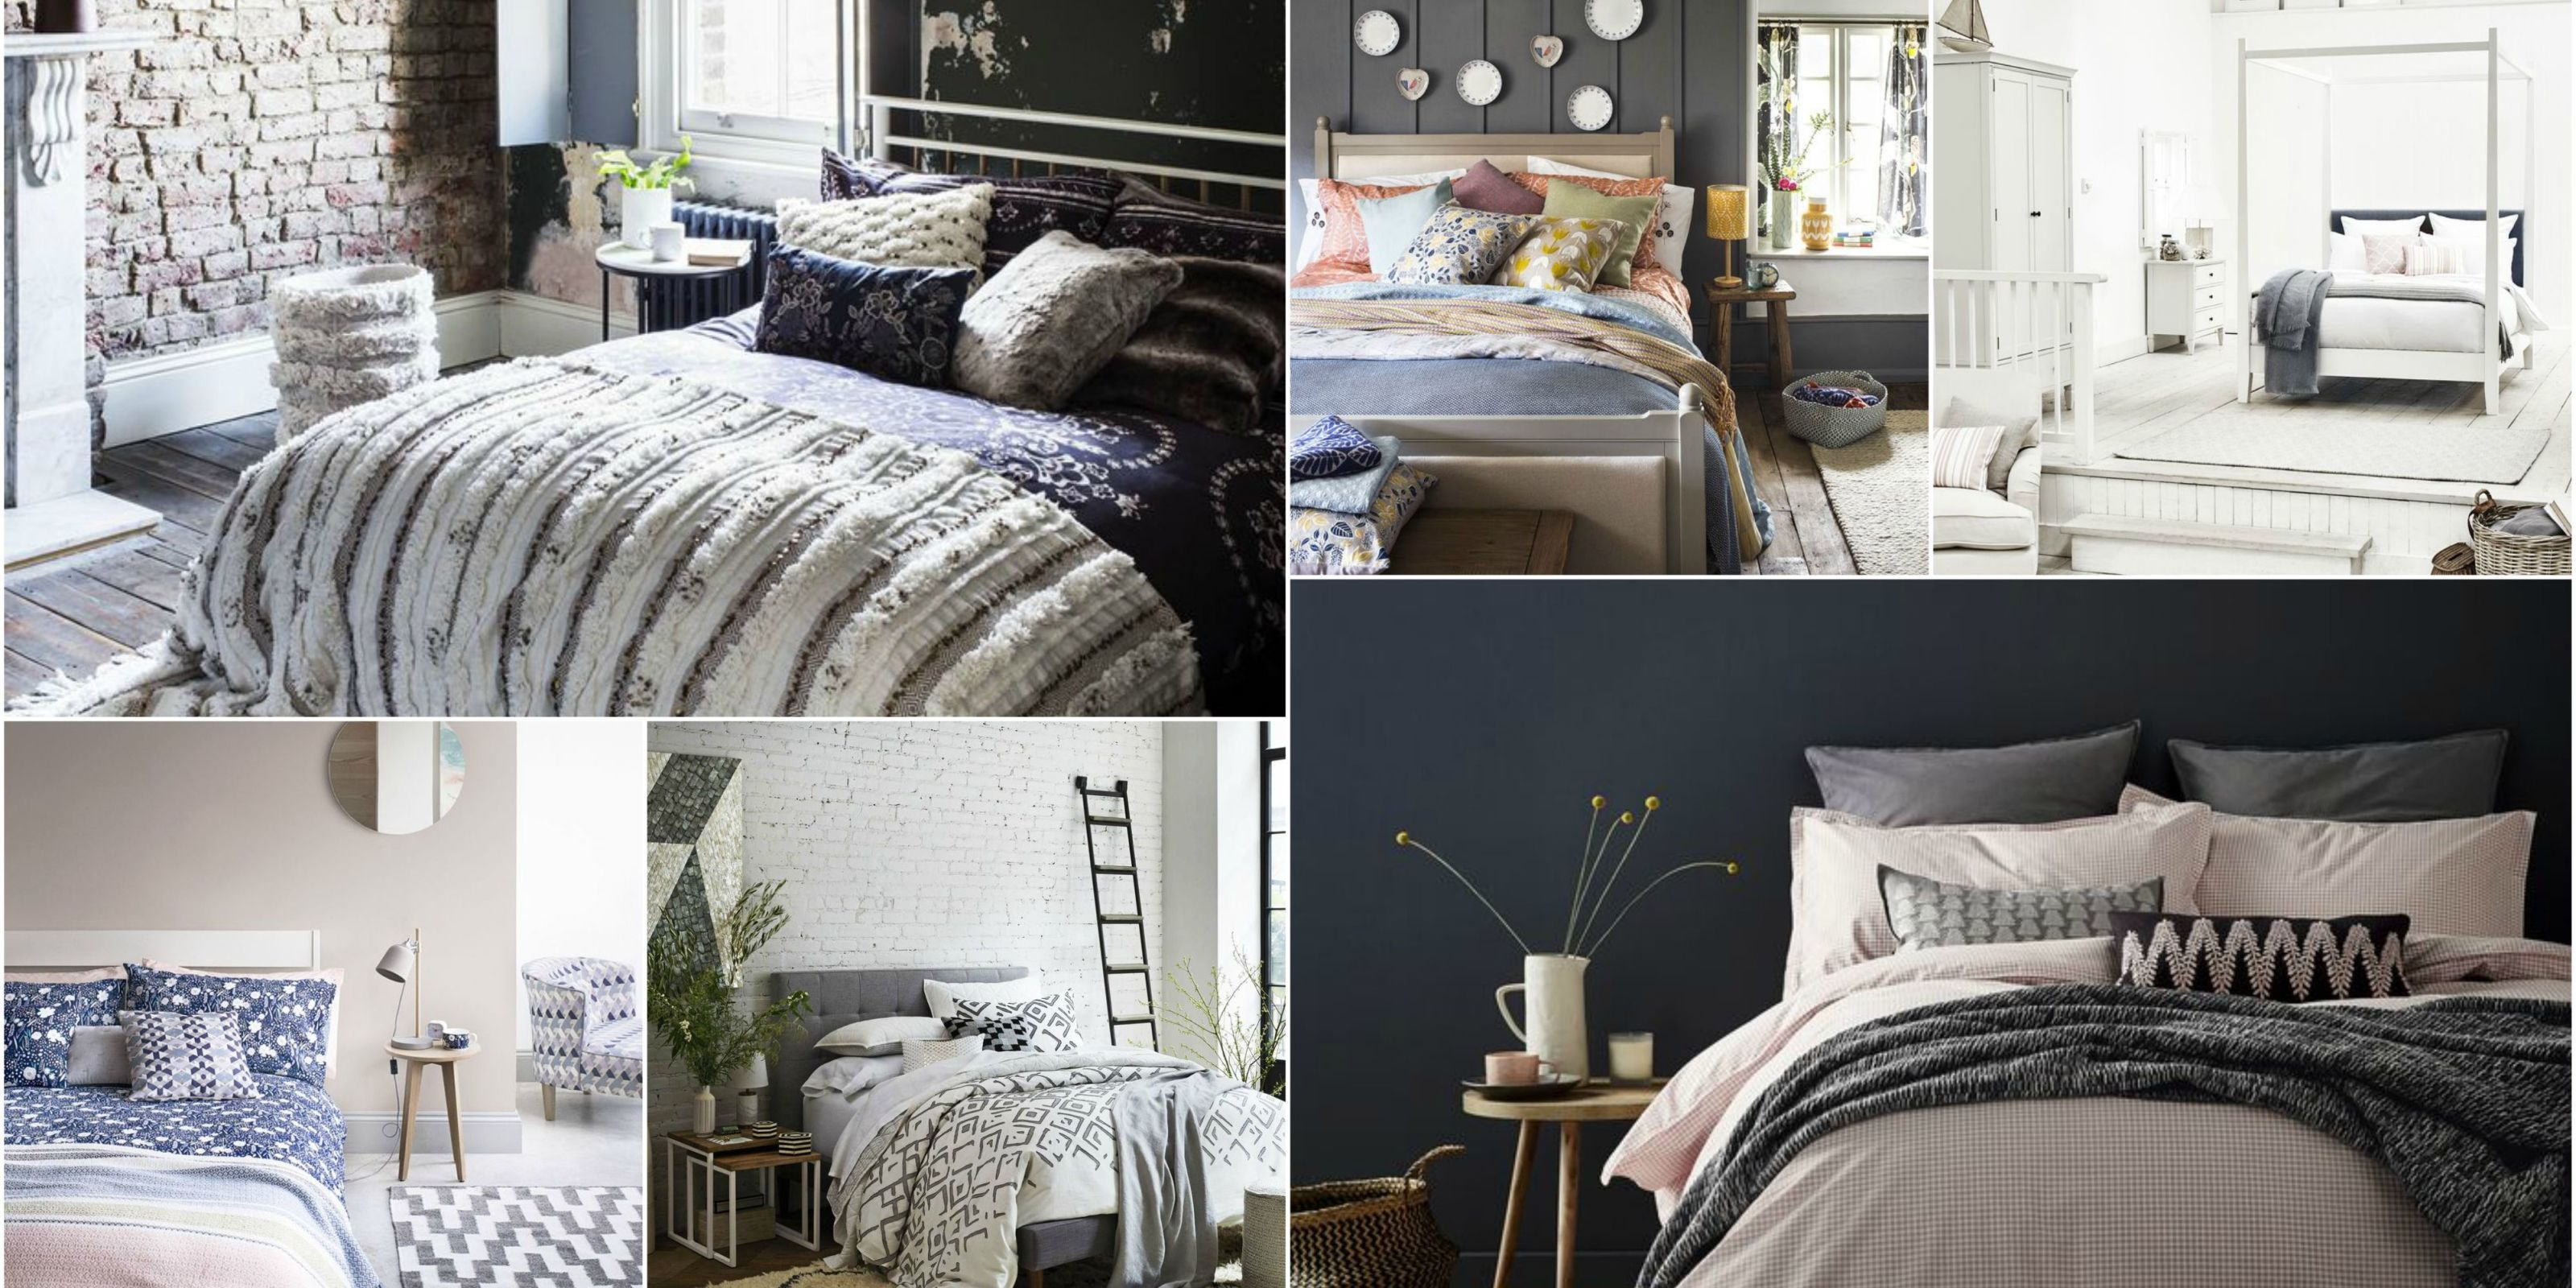 Pinterest Worthy Bedrooms: Ideas And Inspiration To Create Your Dream  Sanctuary